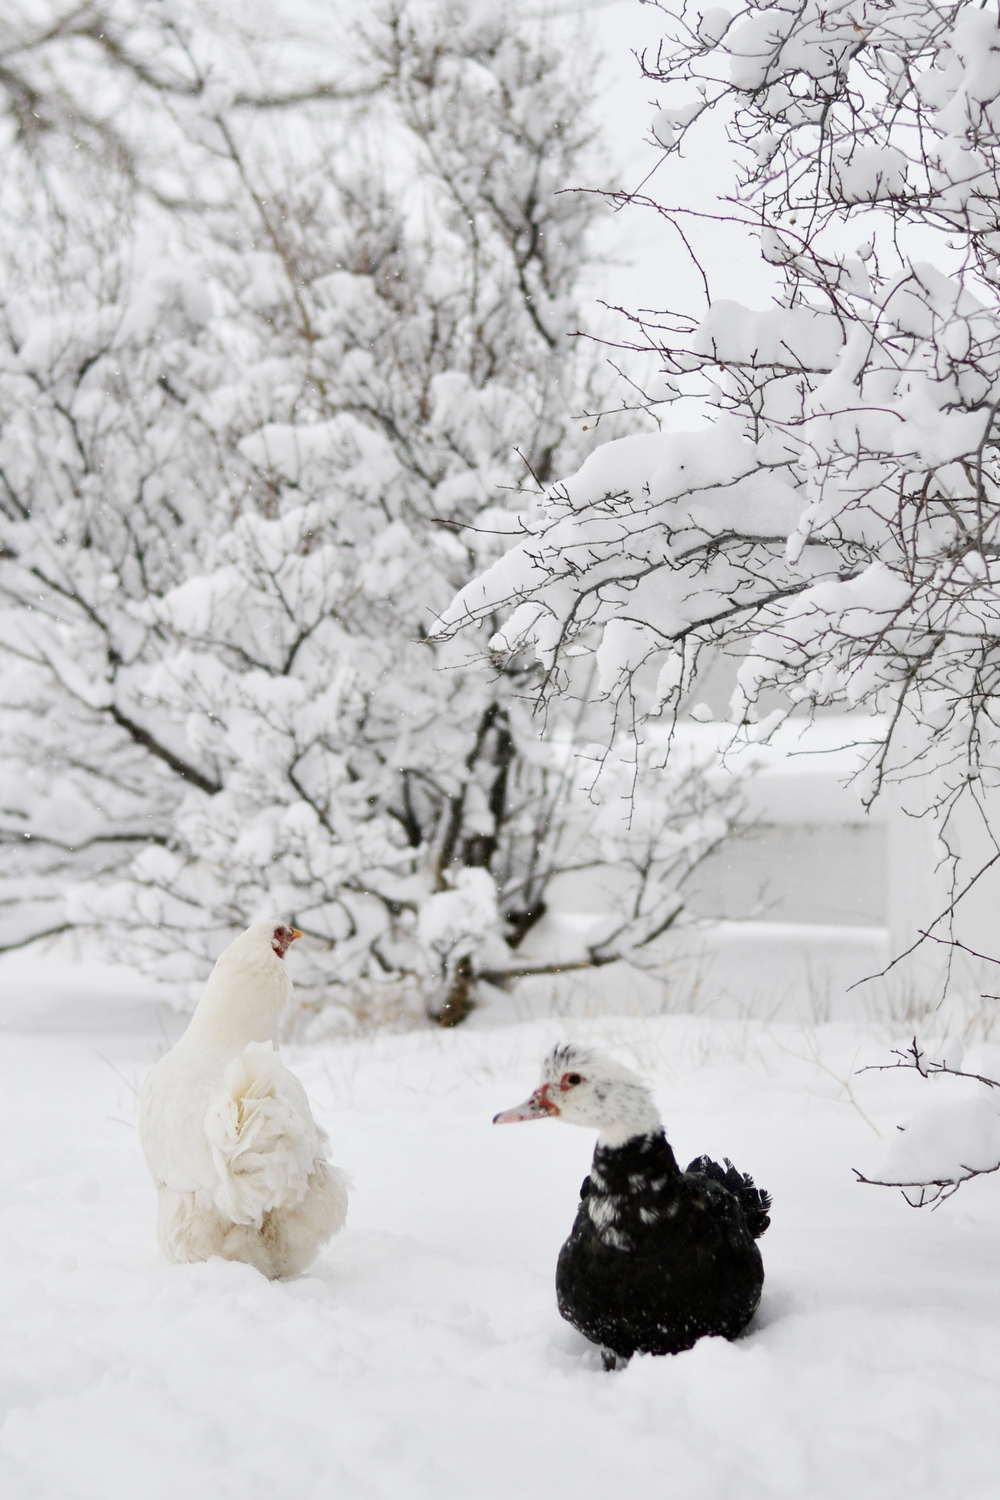 Snowy day on the farm with our chicken & duck